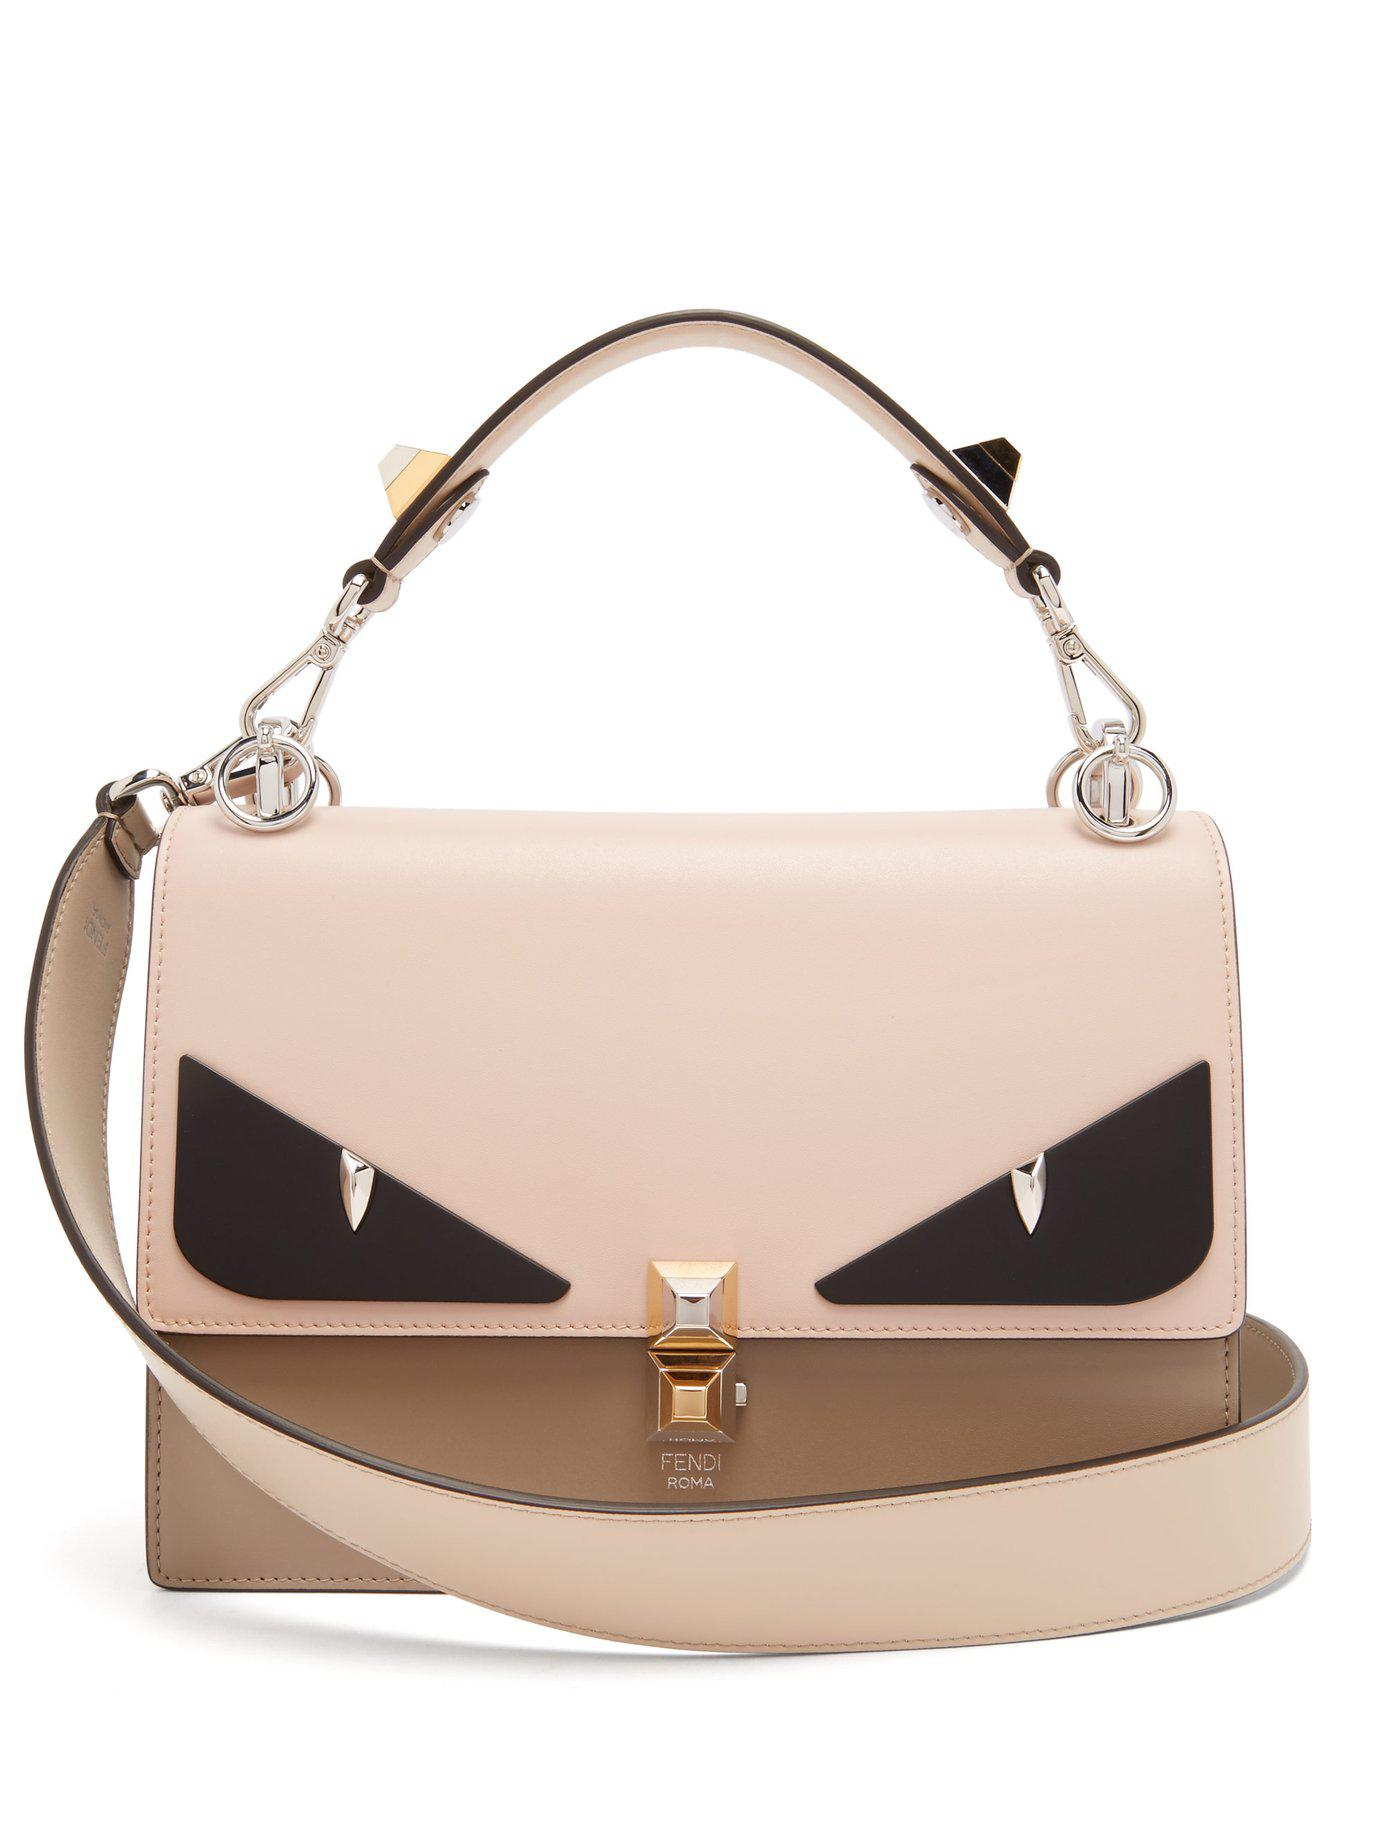 6dacc2f08986 Lyst - Fendi Kan I Monster Eyes Leather Bag - Save 26%